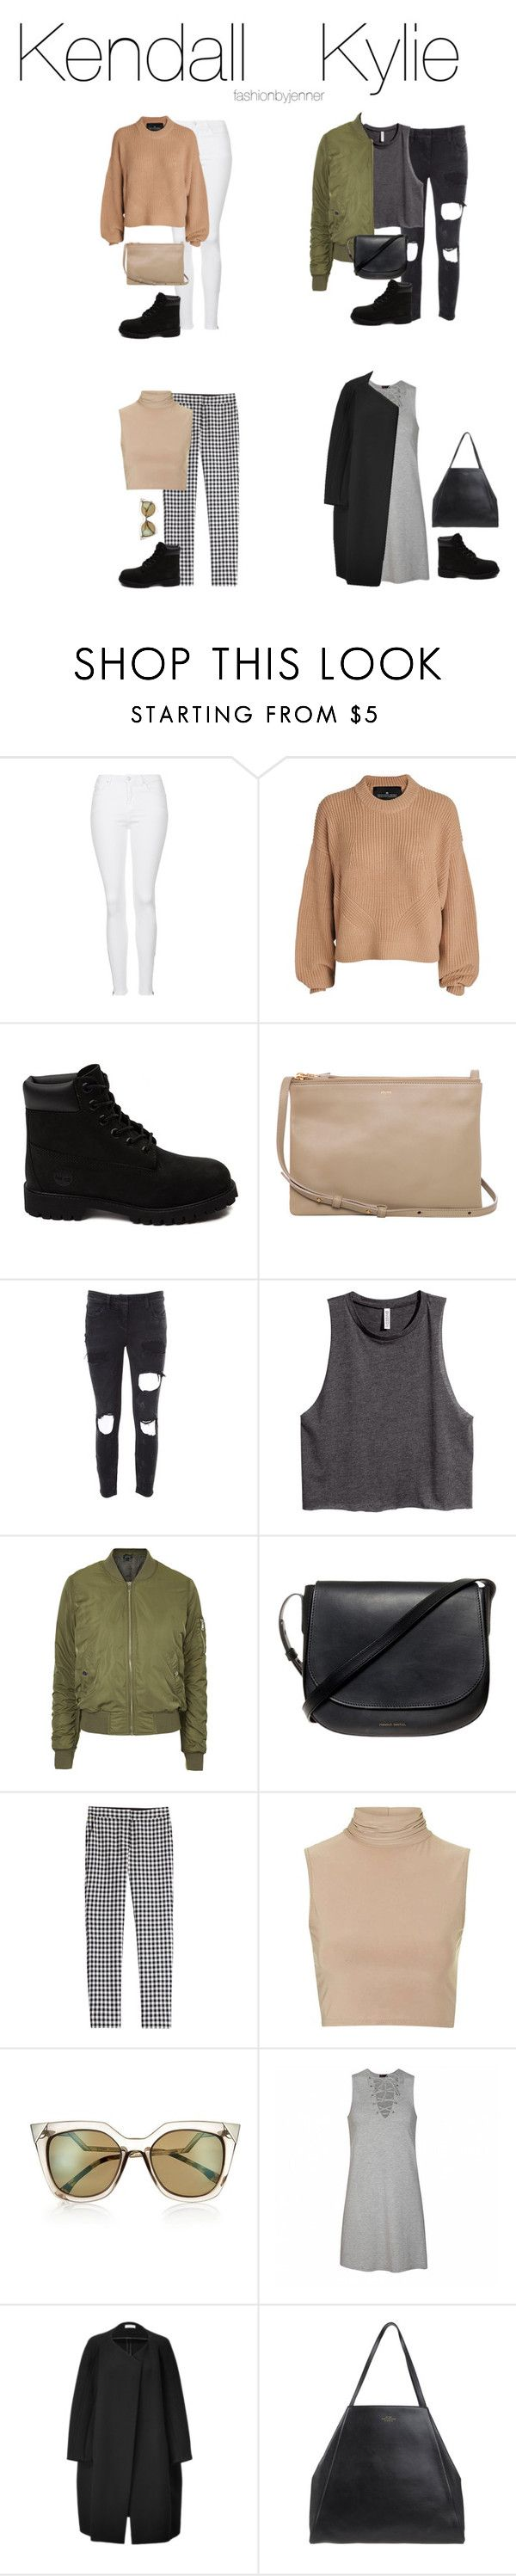 """""""Casual & elegant outfits ft black timberlands"""" by fashionbyjenner ❤ liked on Polyvore featuring Topshop, Designers Remix, Timberland, CÉLINE, Faith Connexion, H&M, Mansur Gavriel, Diane Von Furstenberg, Rare London and Fendi"""